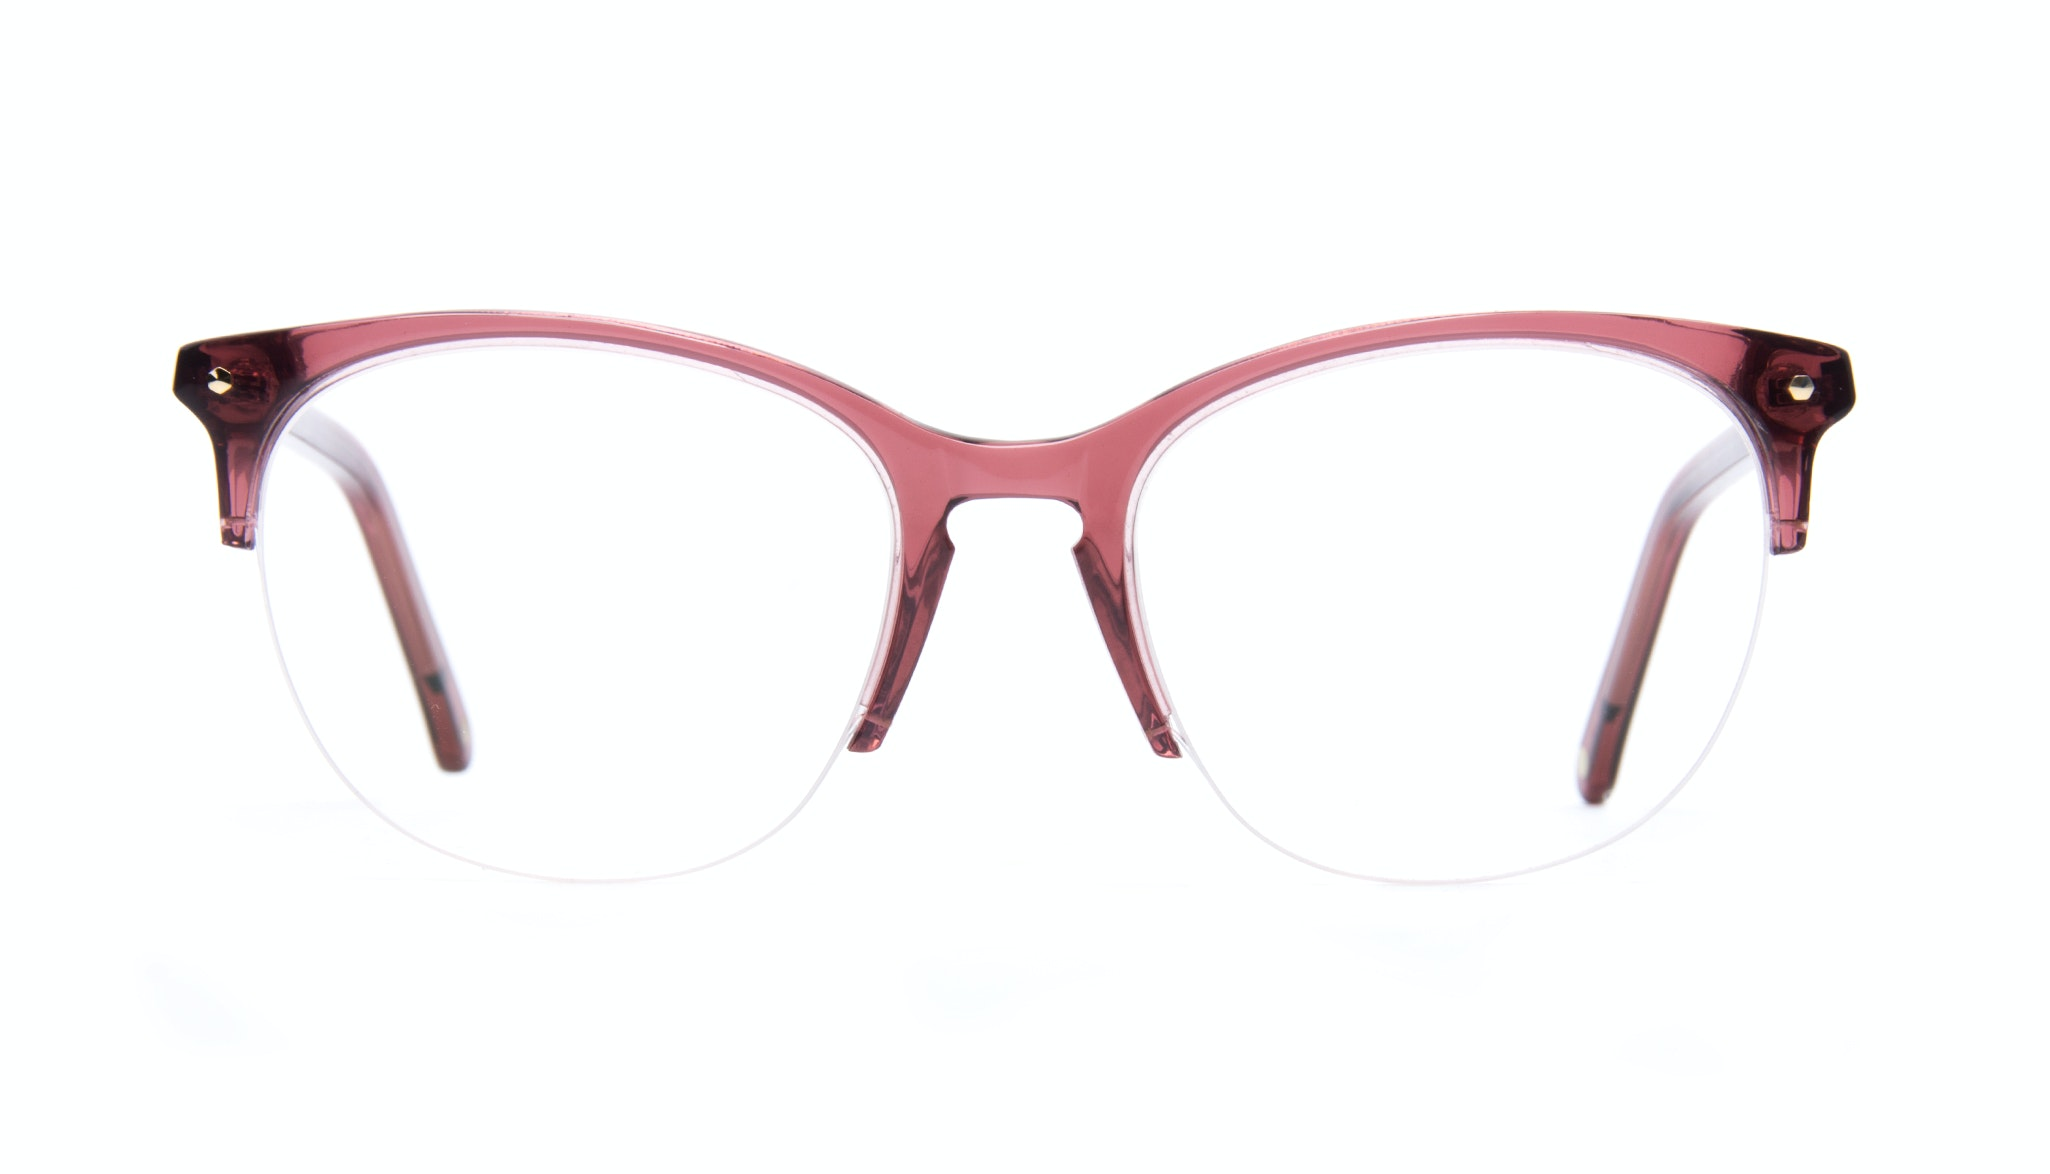 Affordable Fashion Glasses Rectangle Round Eyeglasses Women Nadine Light Winegum Front